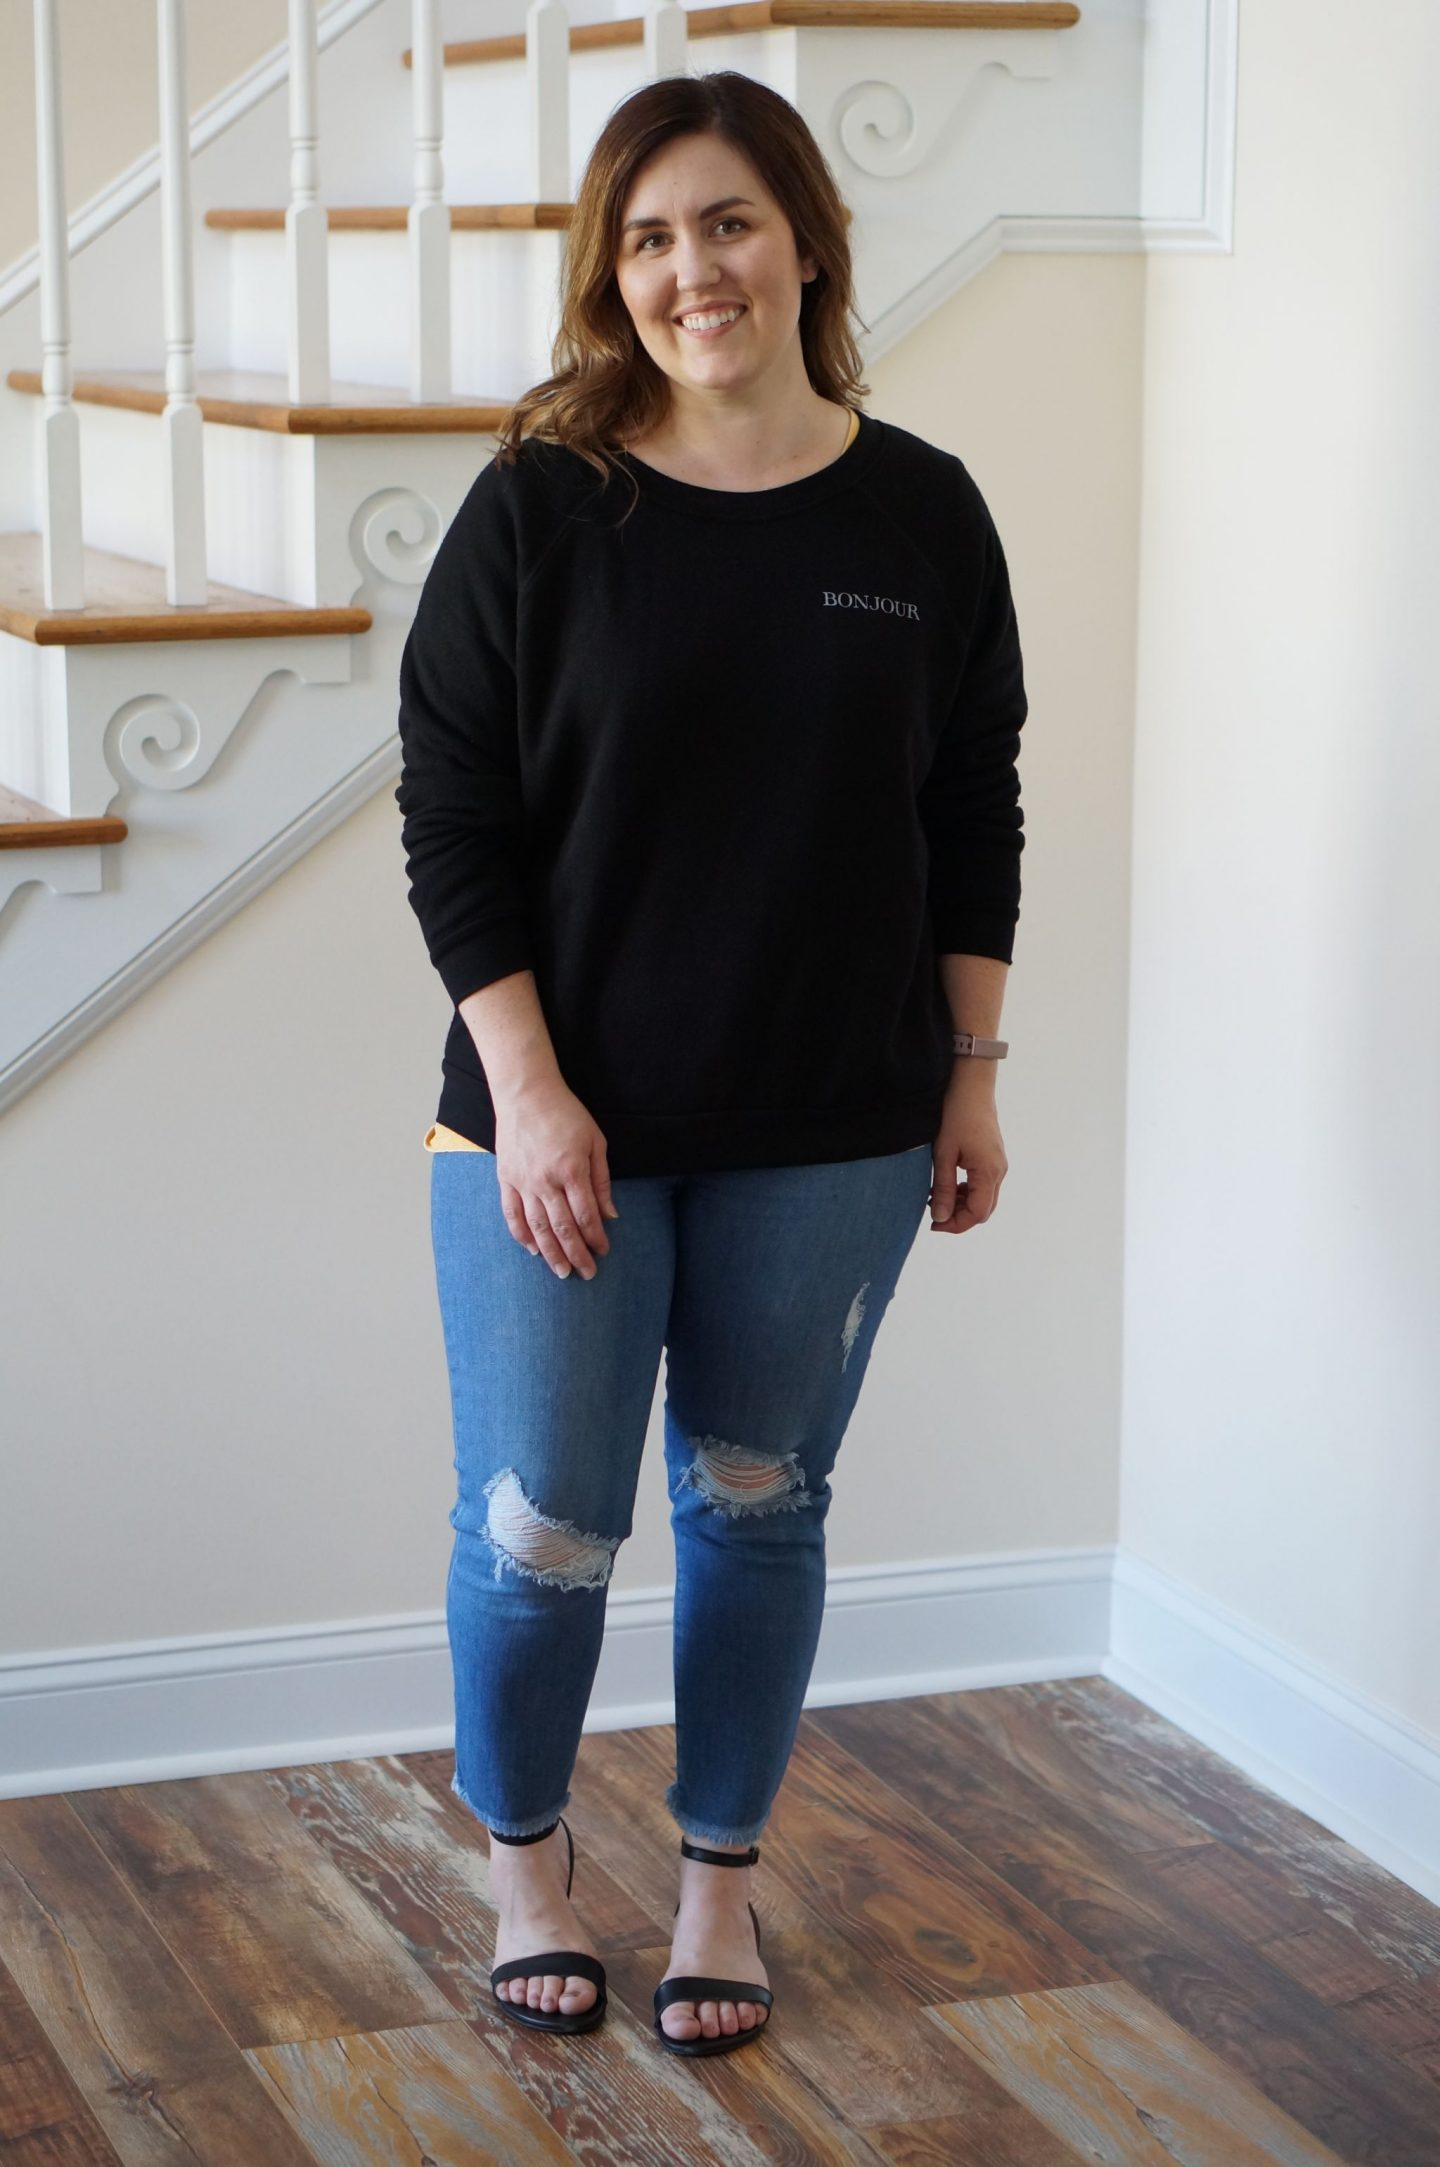 Popular North Carolina style blogger Rebecca Lately shares her October Stitch Fix outfits. Click here to read what she liked and what she sent back!